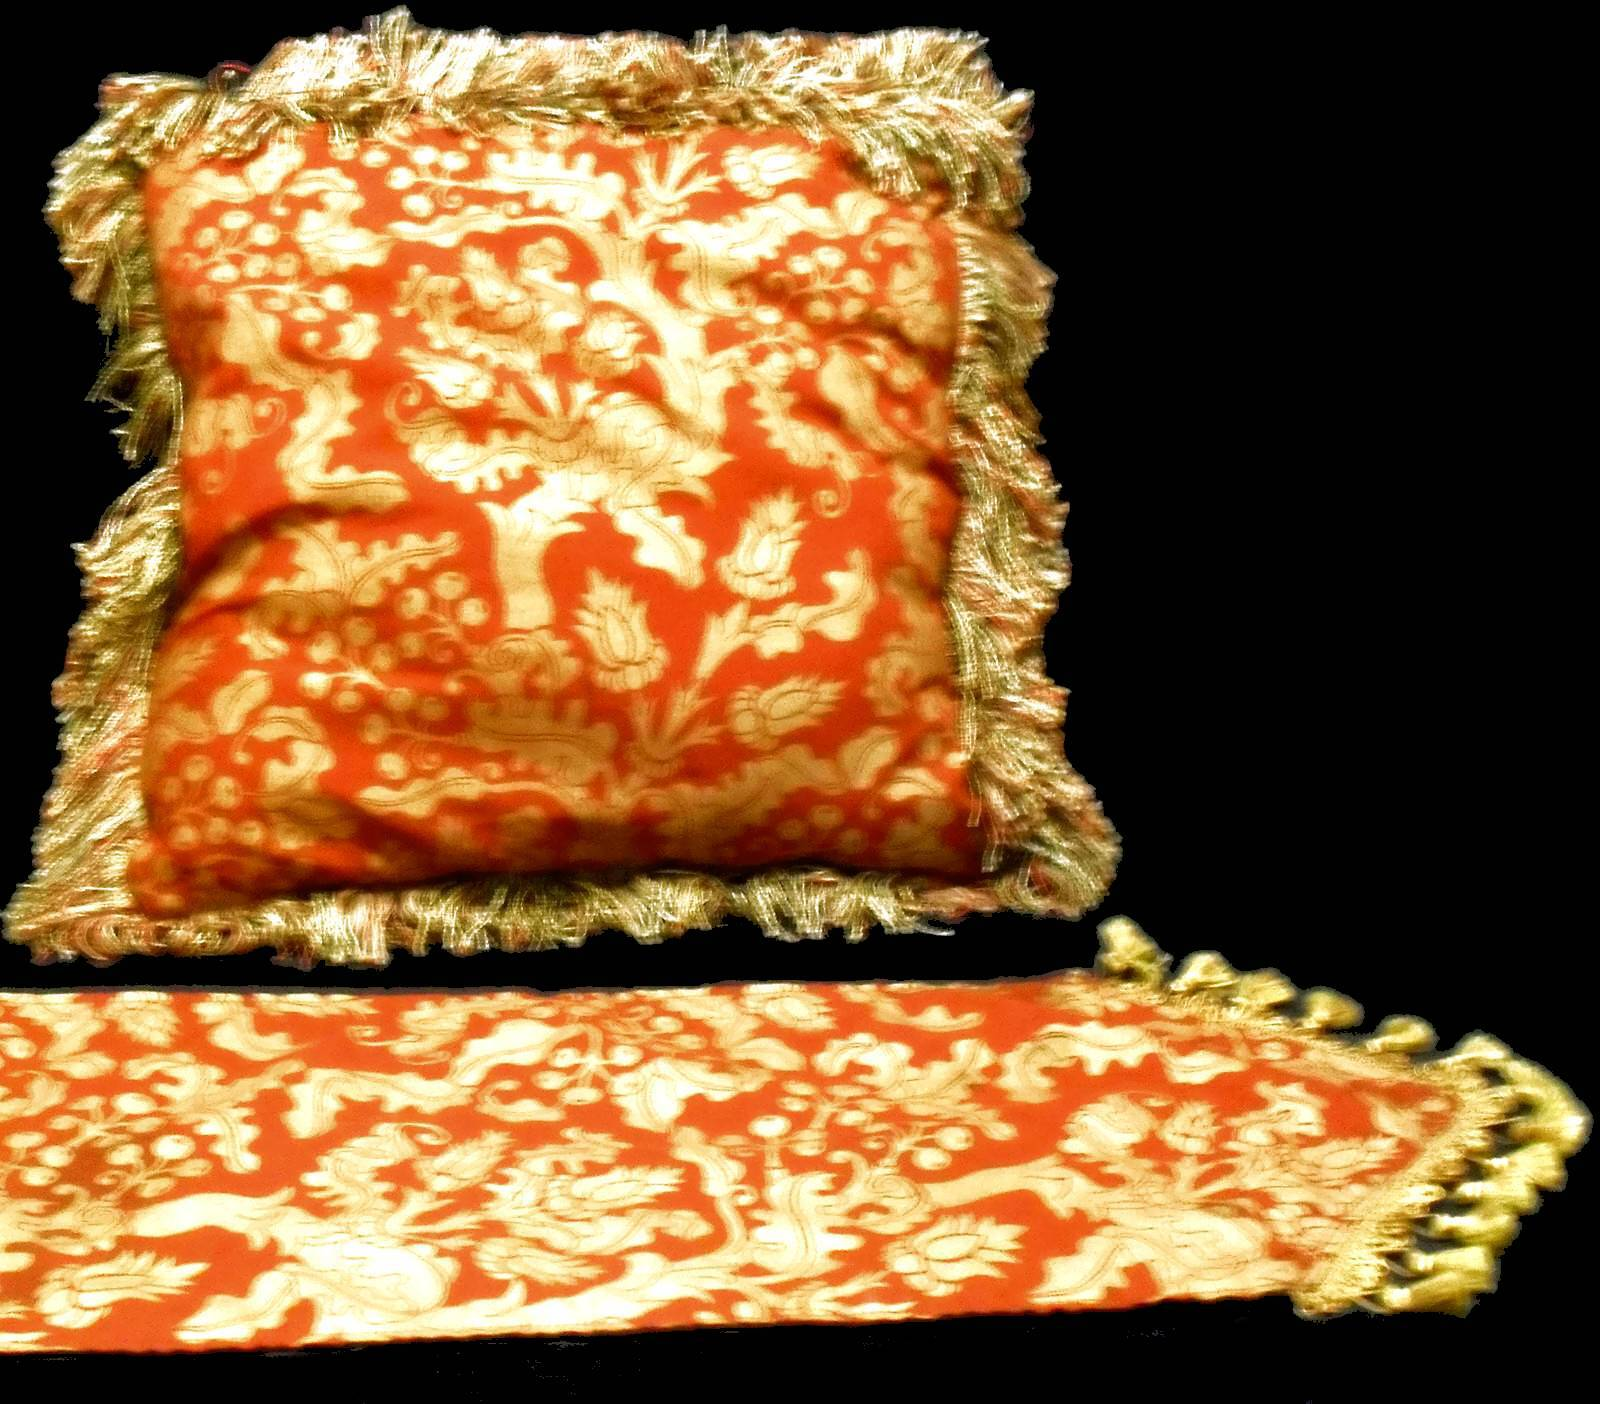 Pillows Set 4 Vintage Red & Gold Holly Fabric w/Runner Holiday Decor